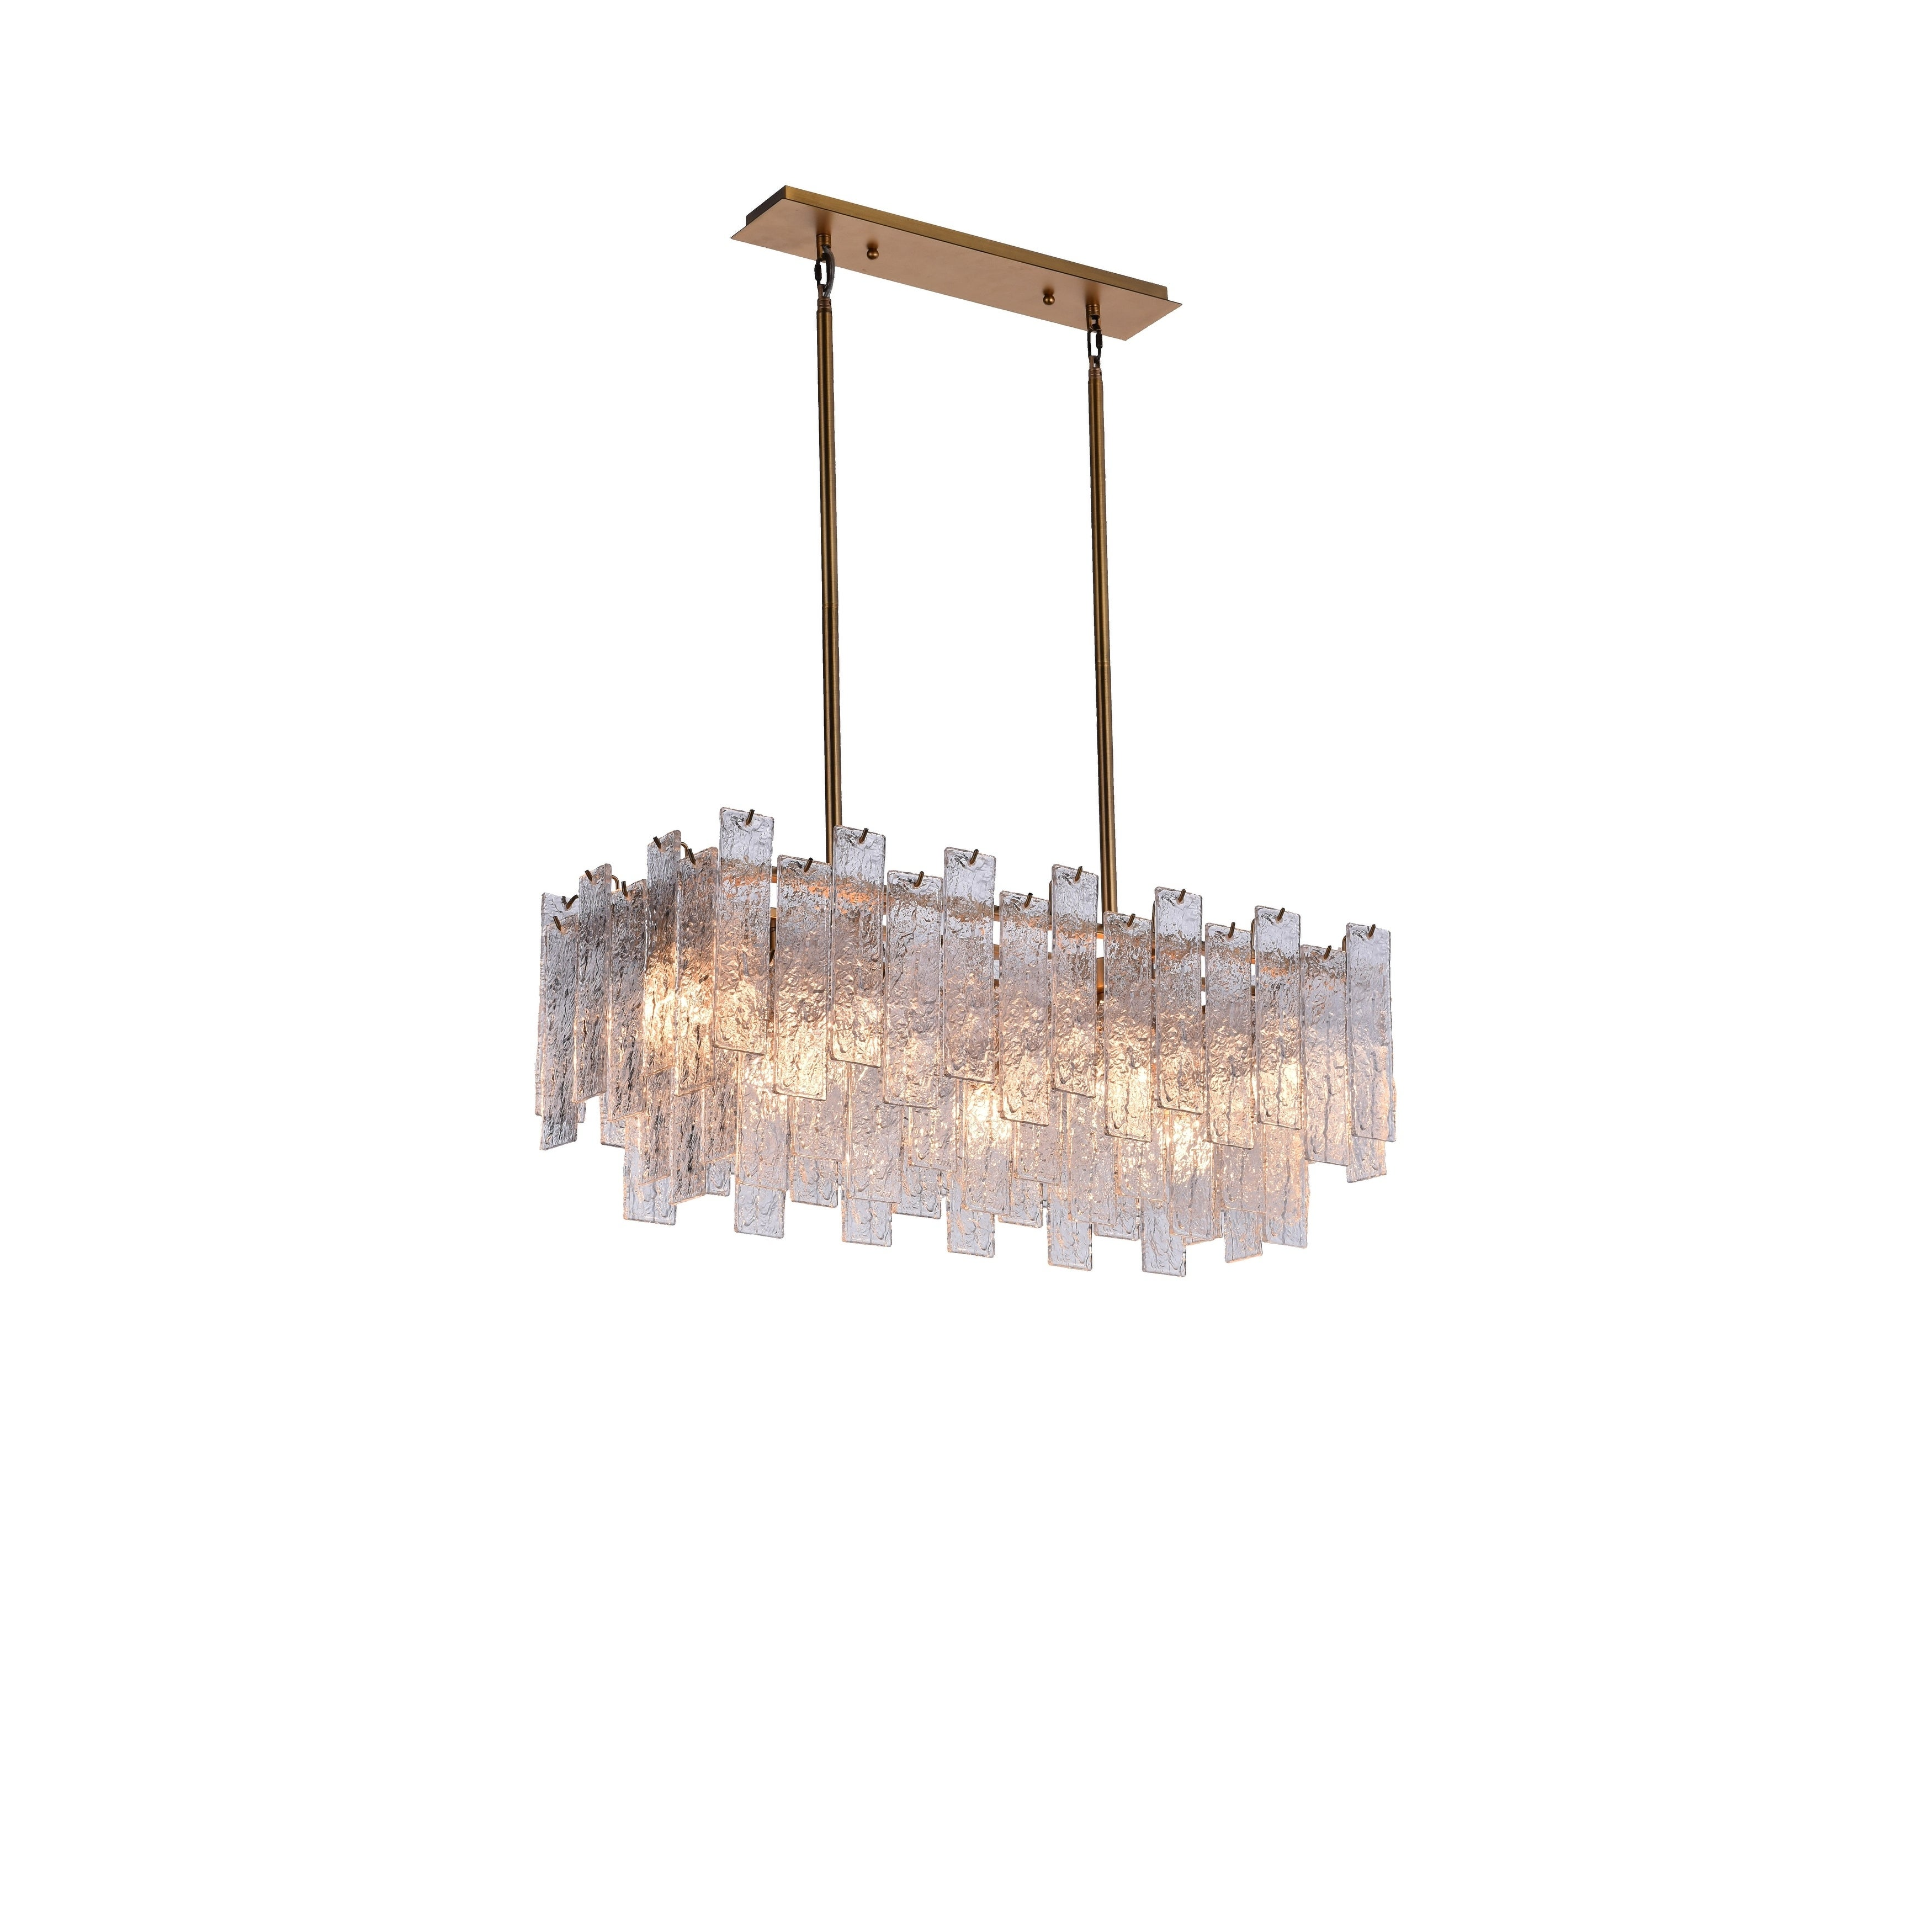 Image of: Shop Black Friday Deals On Rectangular Crystal Modern Contemporary Mid Century Dining Living Room Chandelier With Warm Brass Finish Overstock 29045822